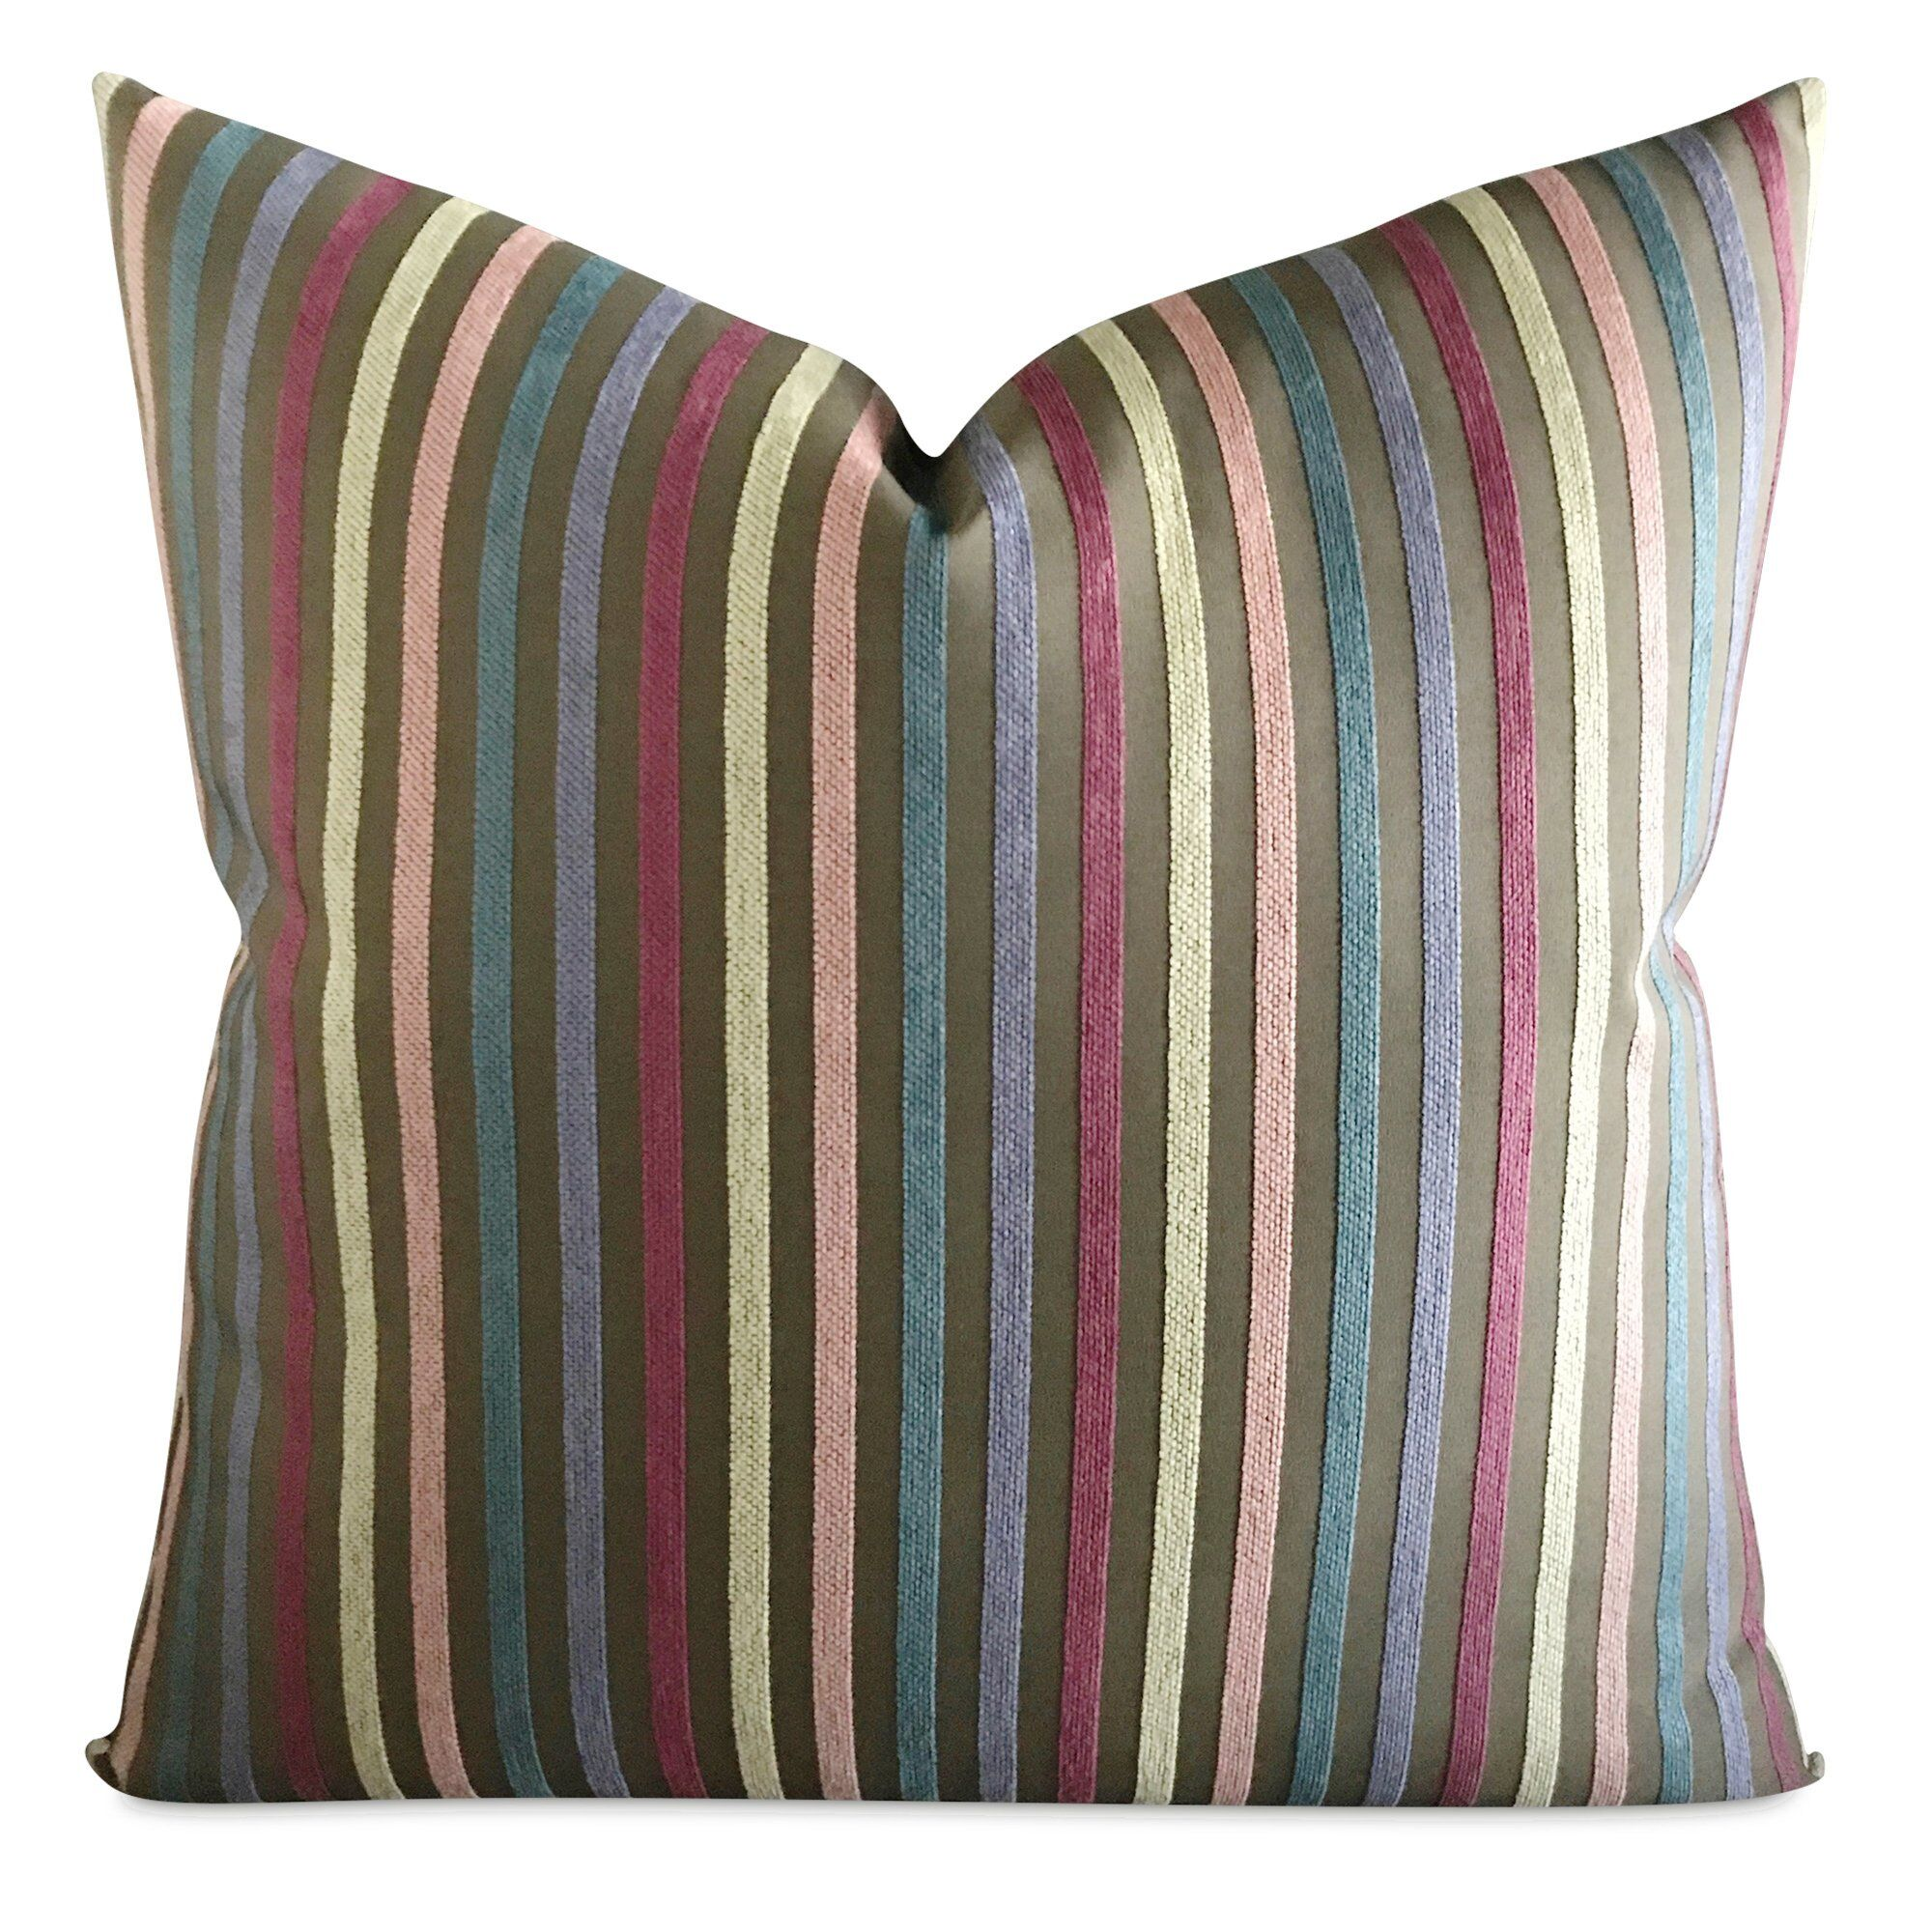 Beckworth Striped Decorative Pillow Cover